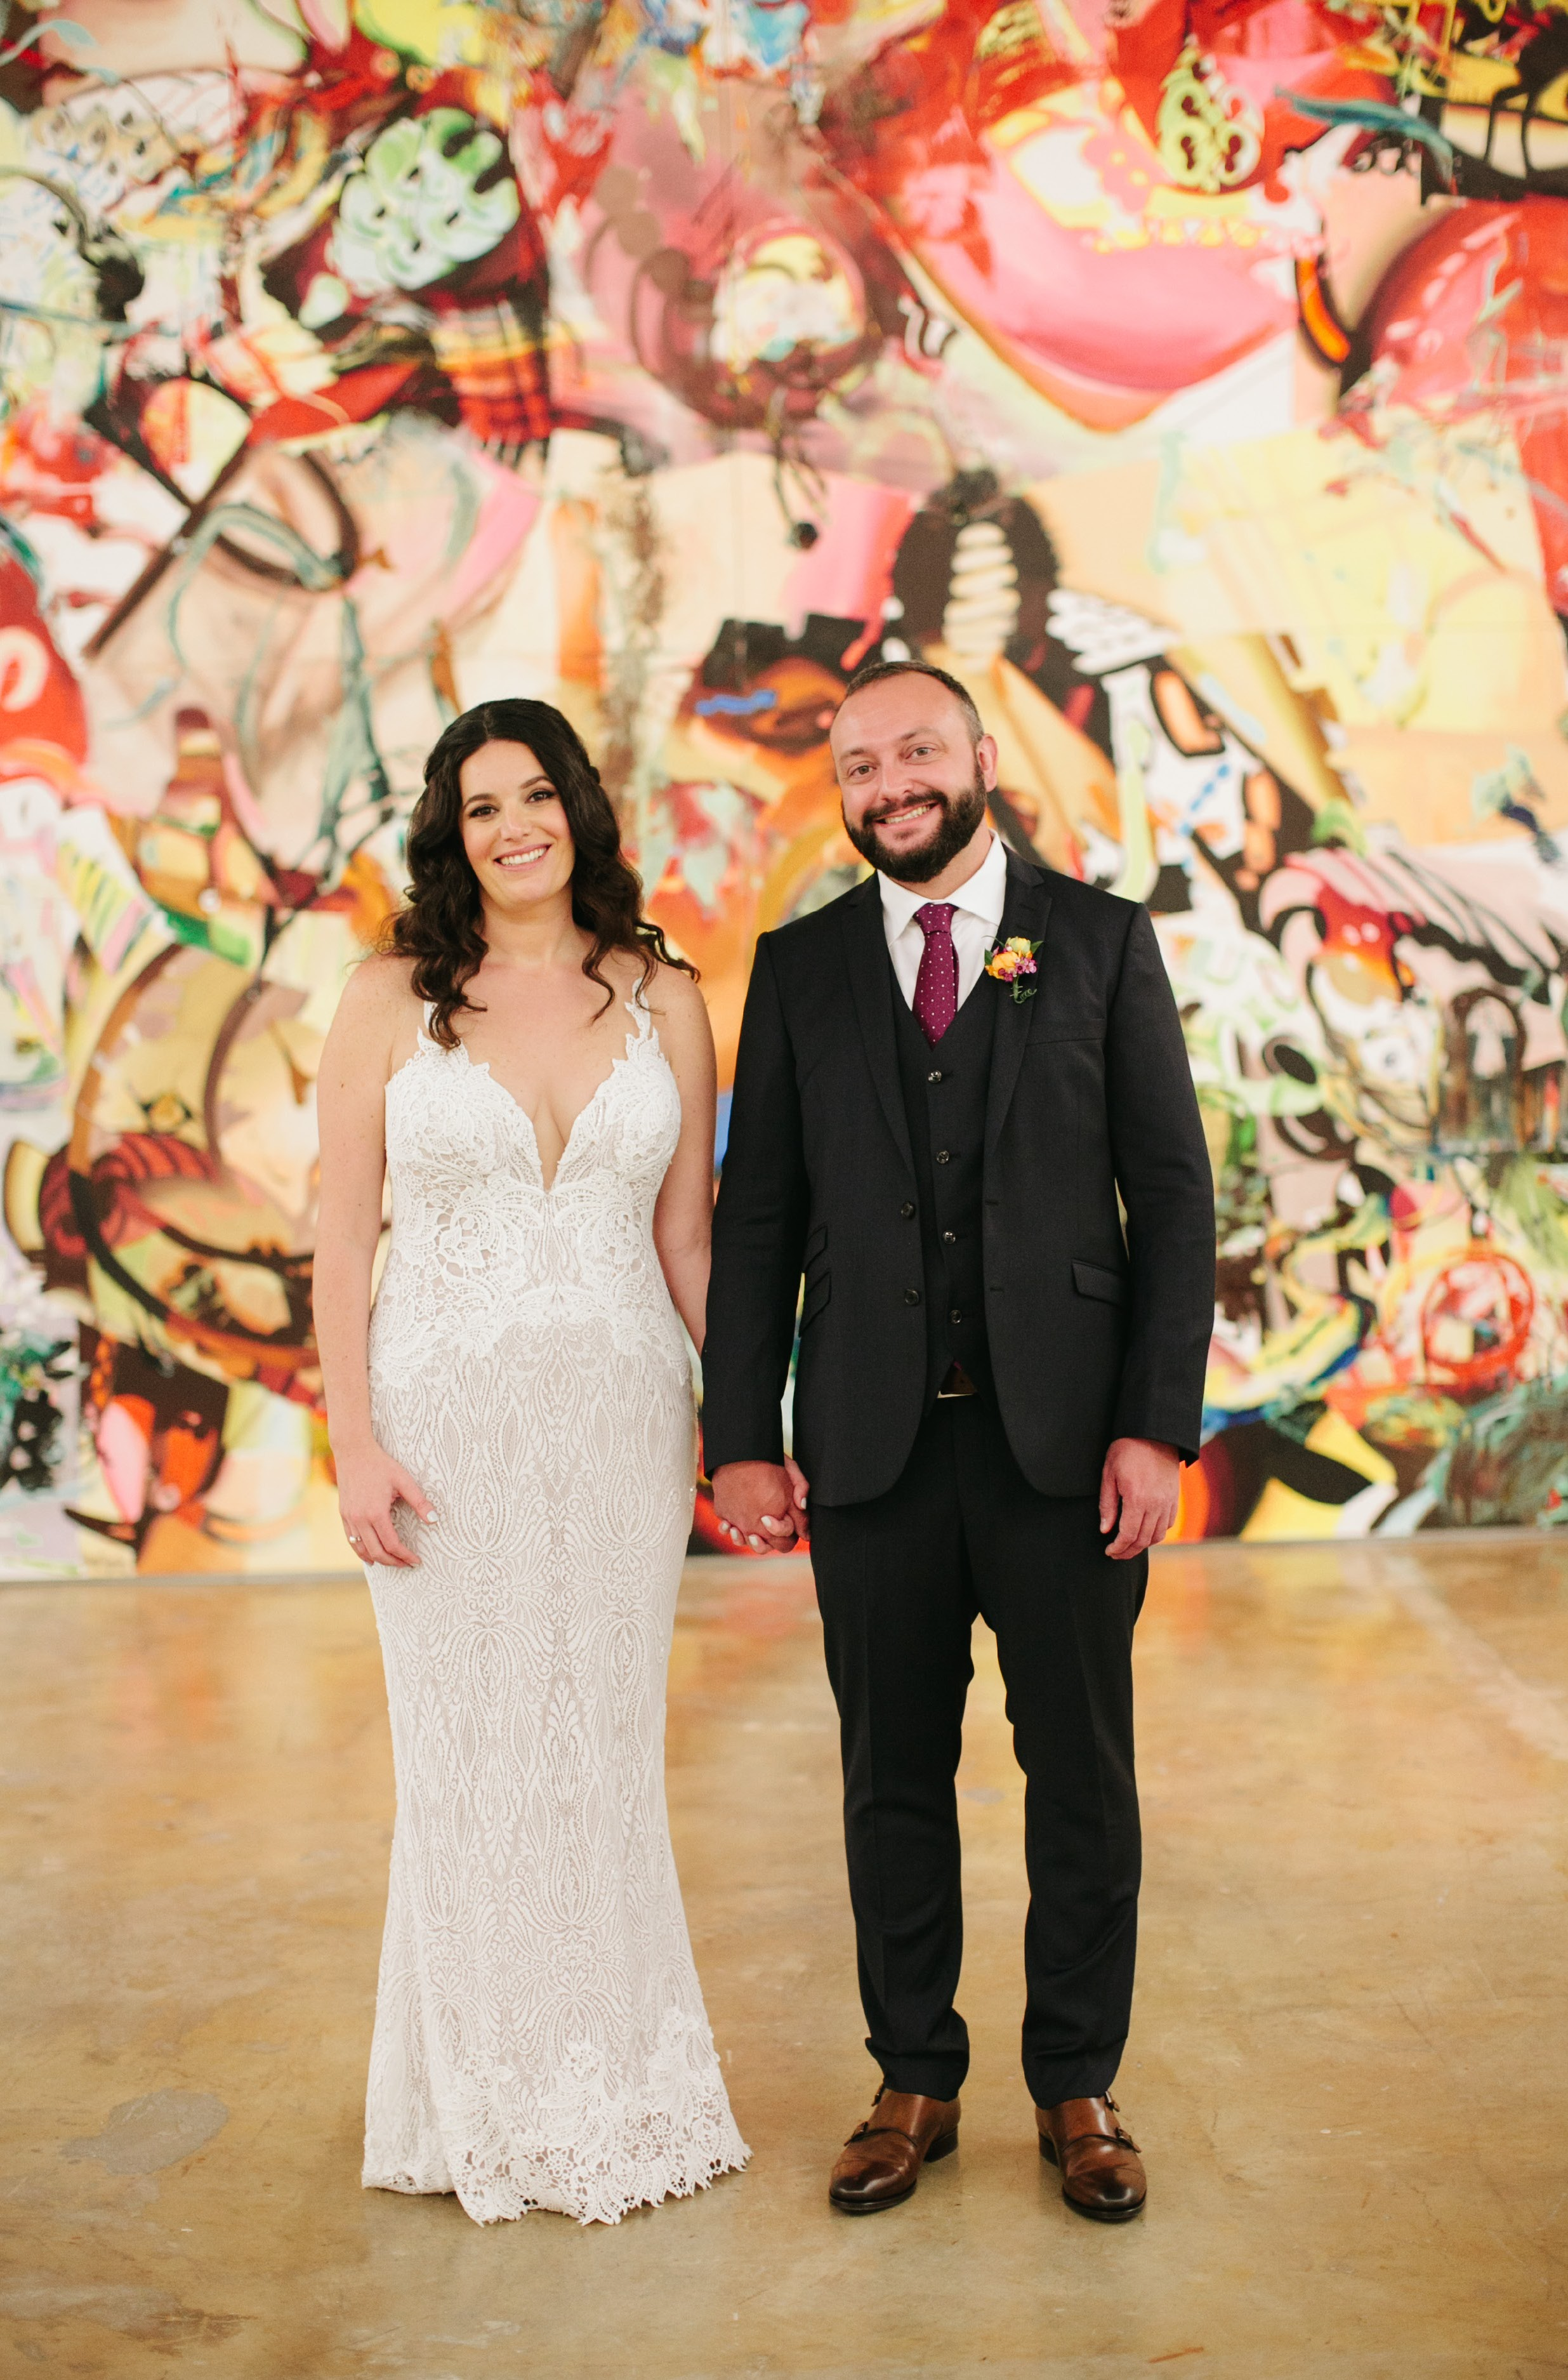 Wynwood Wedding at Rubell Family Collection in Dowtown Miami25.jpg